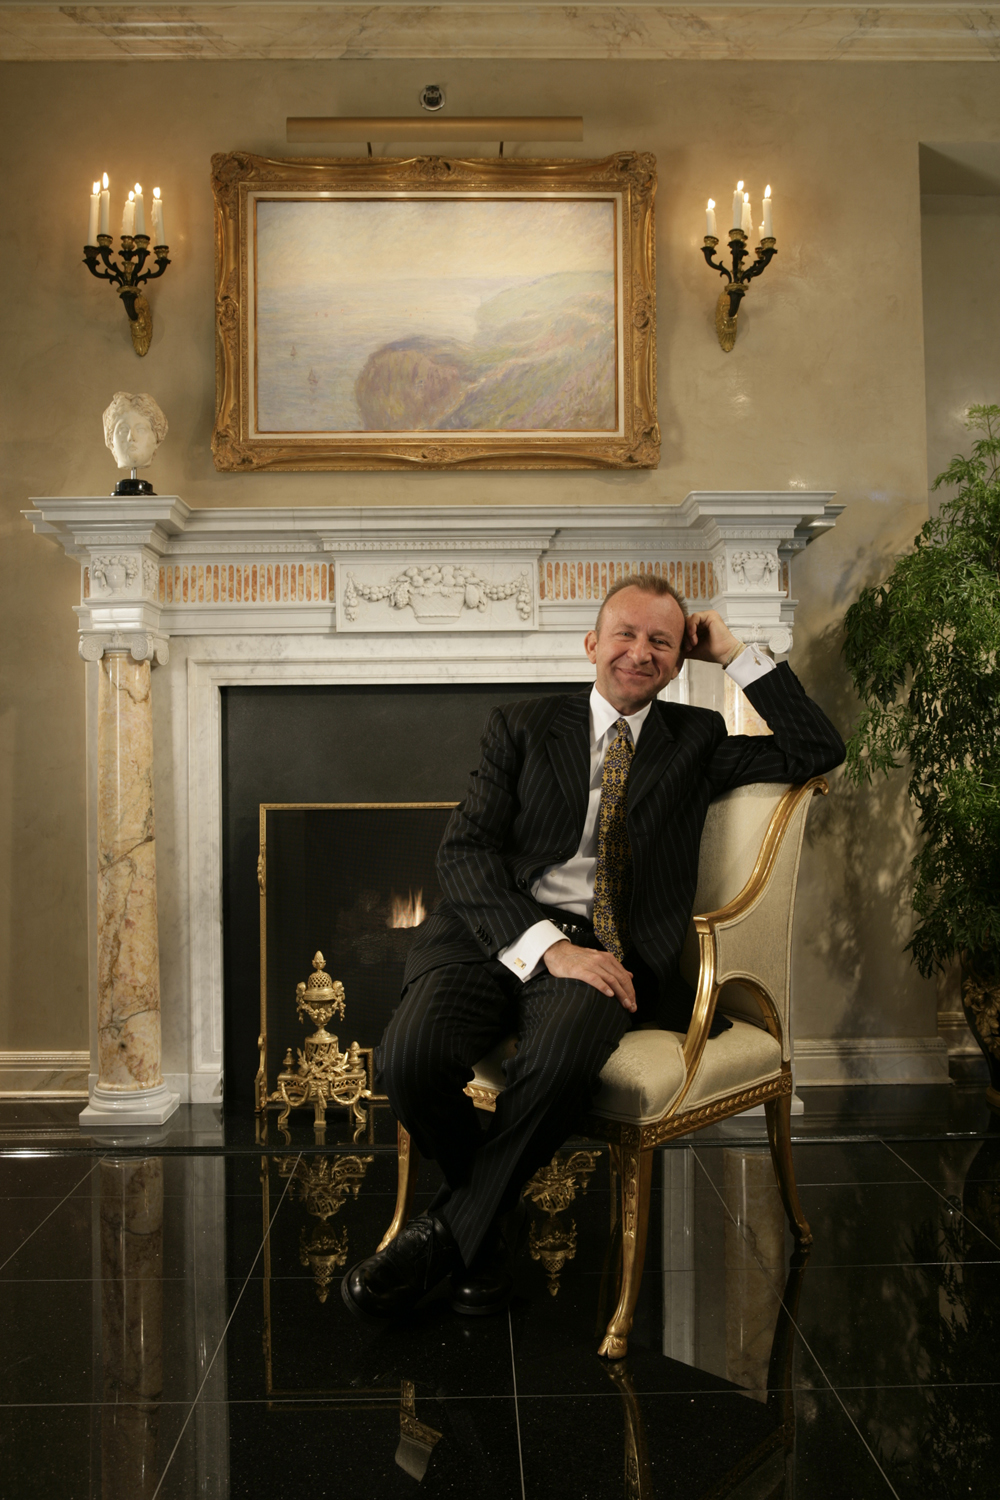 Chicago Interior Designer John Robert Wiltgen